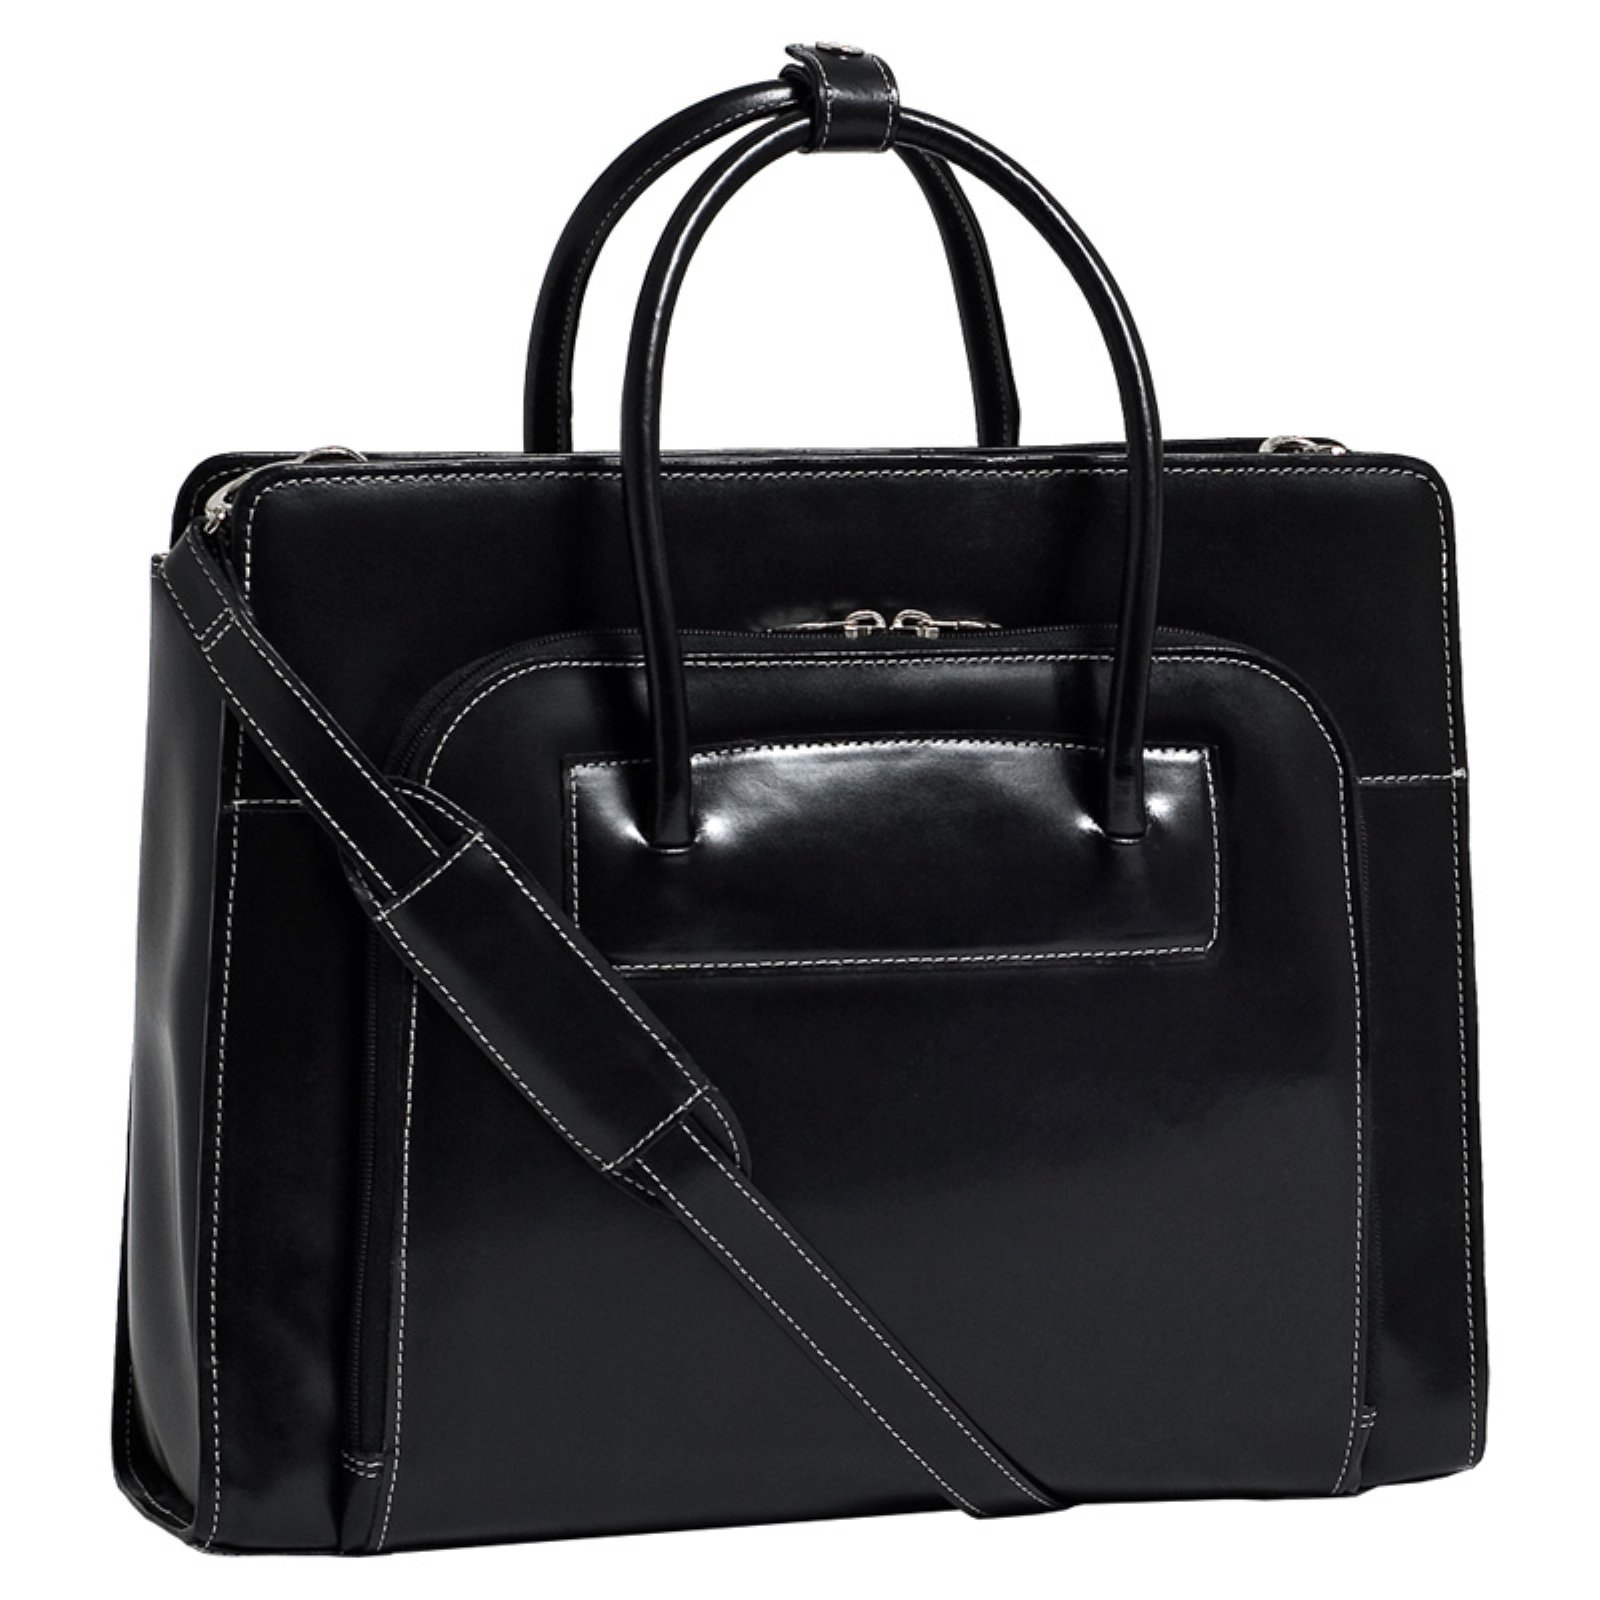 "Mcklein 15.4"" Lake Forest Ladies' Leather Briefcase with Removable Sleeve 94335 - Black"